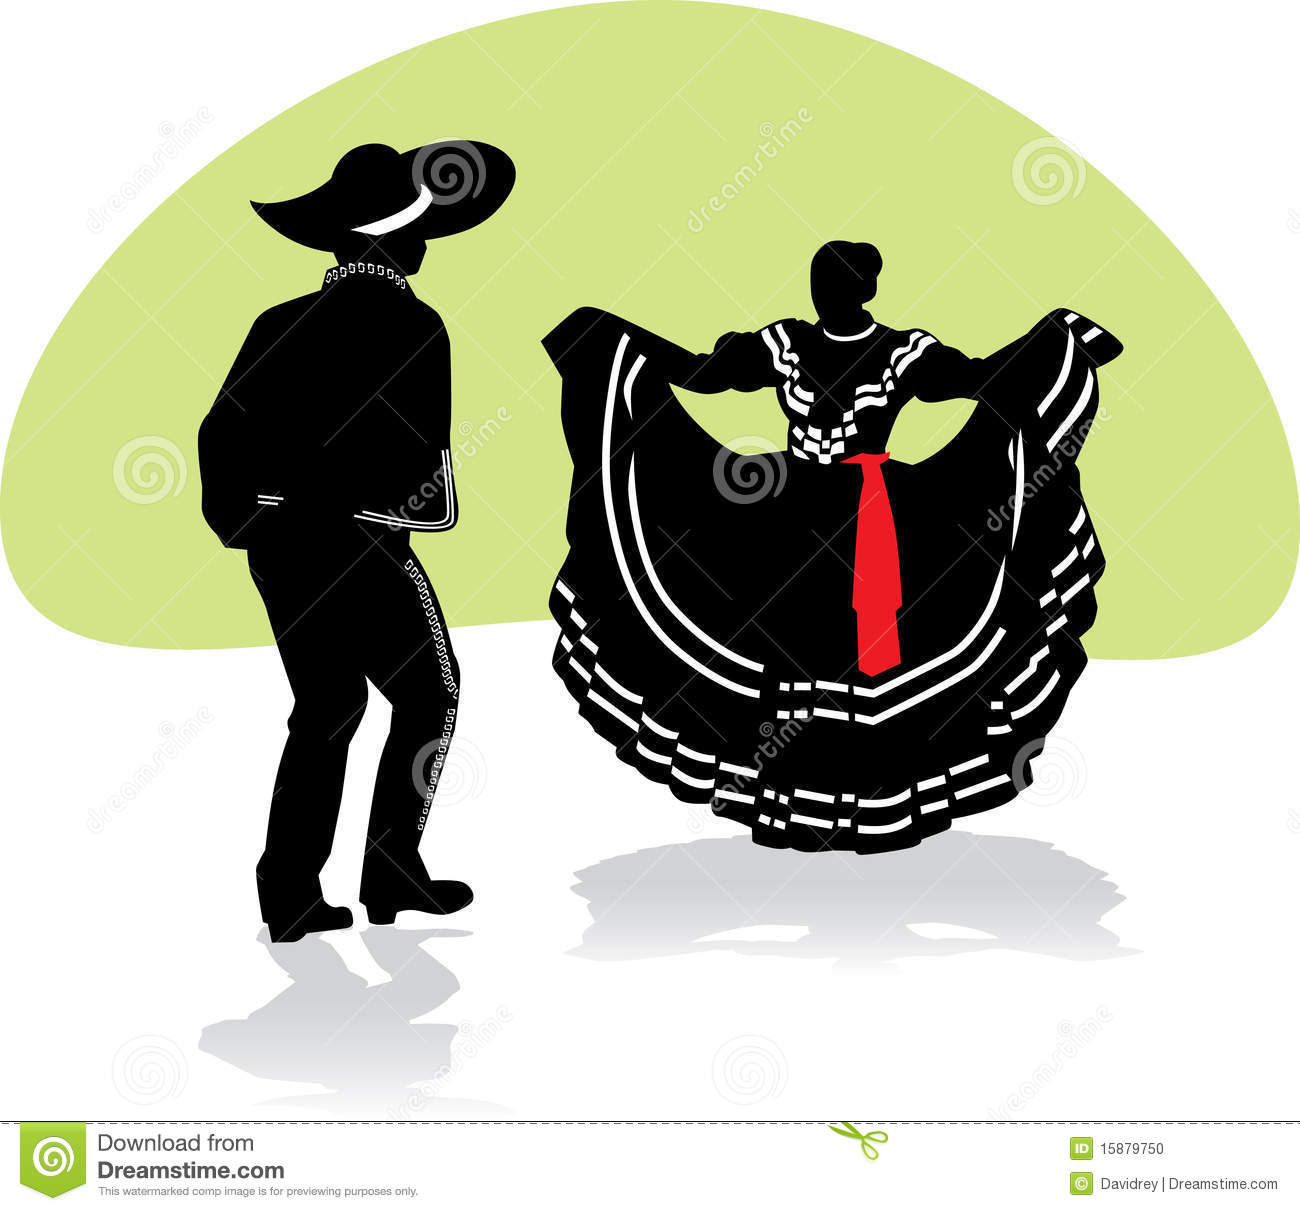 Mexican Folkloric Dance Couple Stock Photo - Image: 15879750